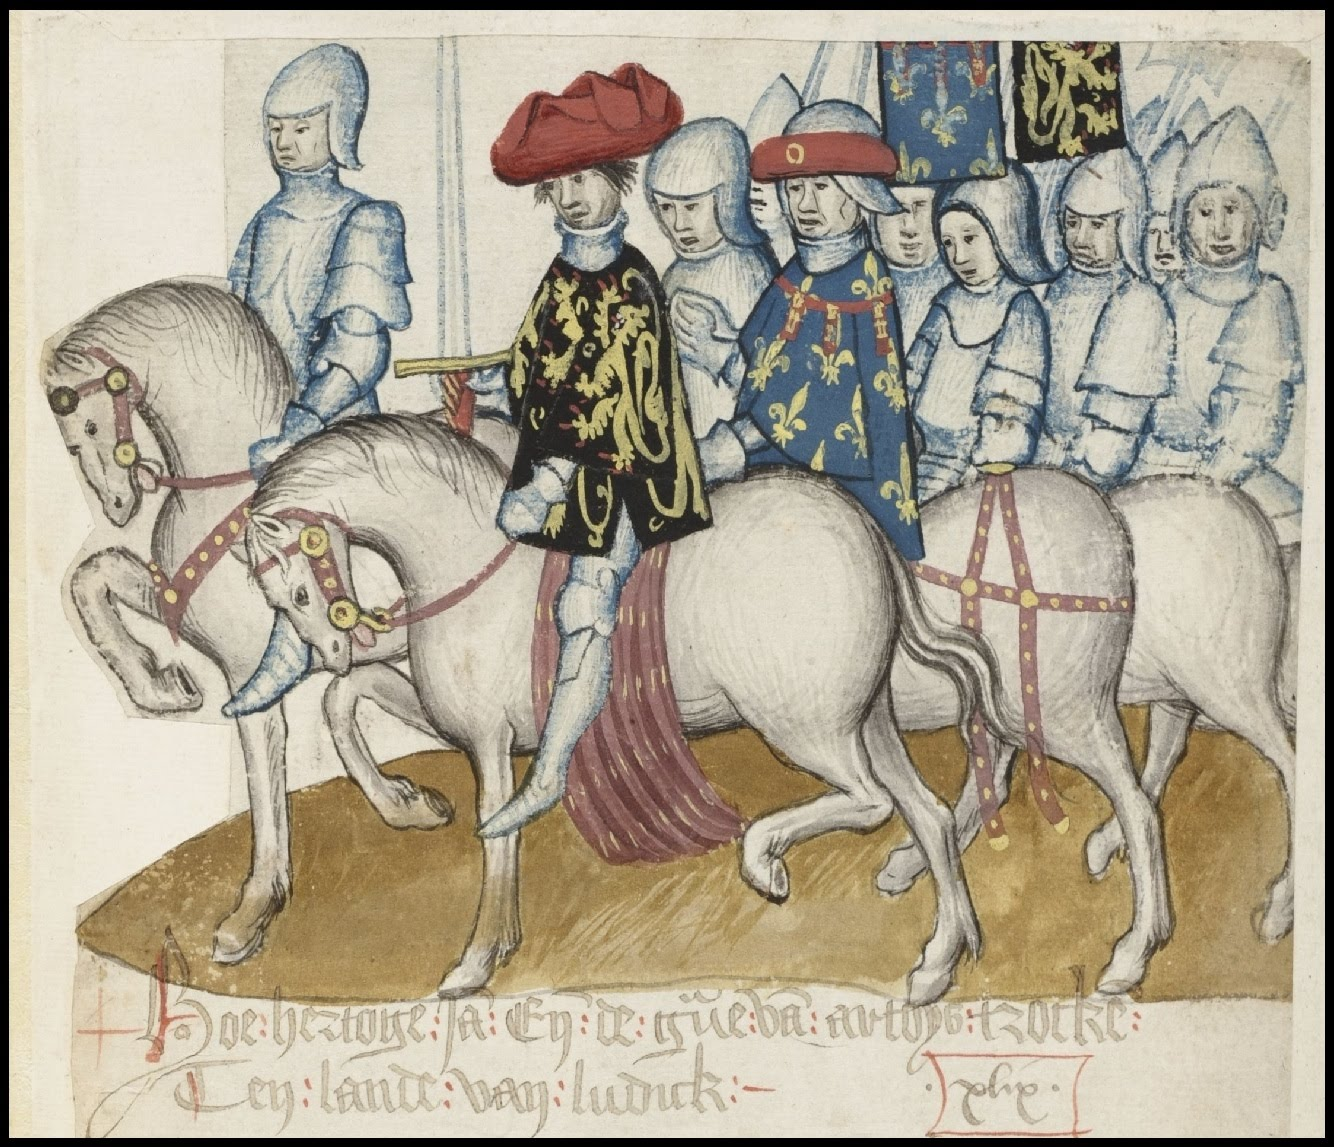 medieval nobles and soldiers riding horses